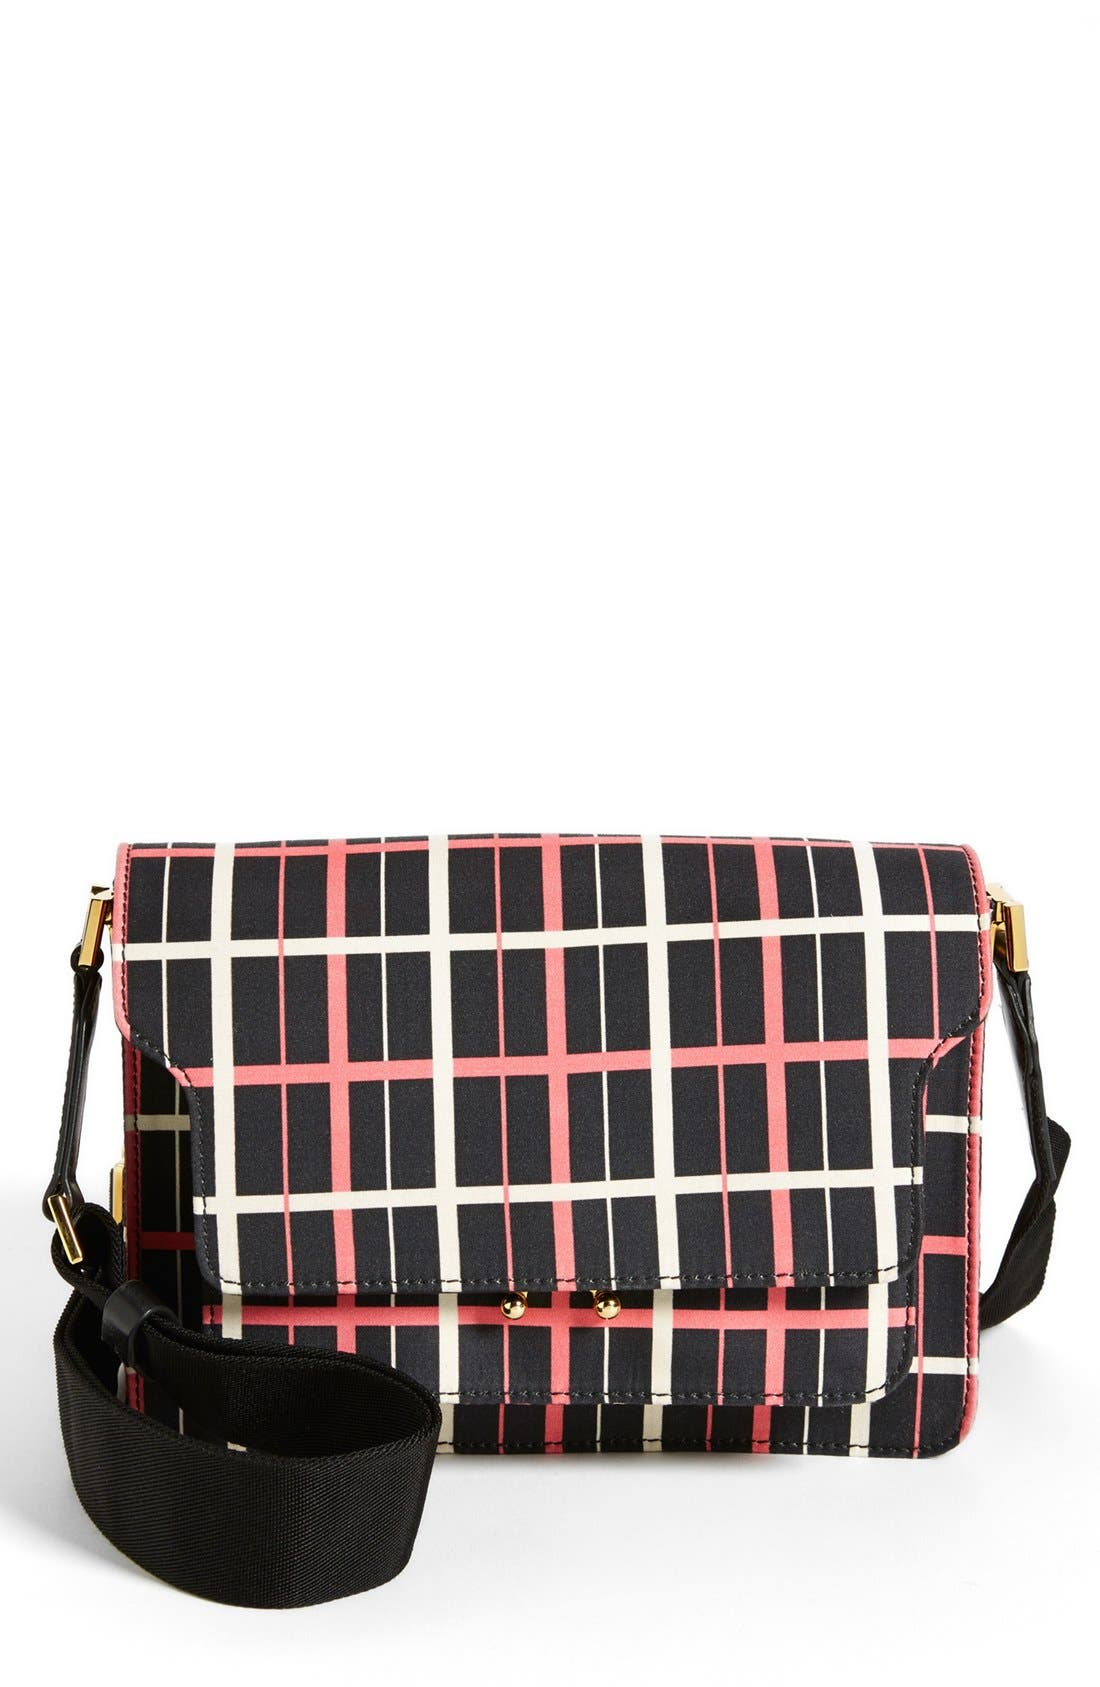 Alternate Image 1 Selected - Marni Graphic Print Double Partition Crossbody Bag